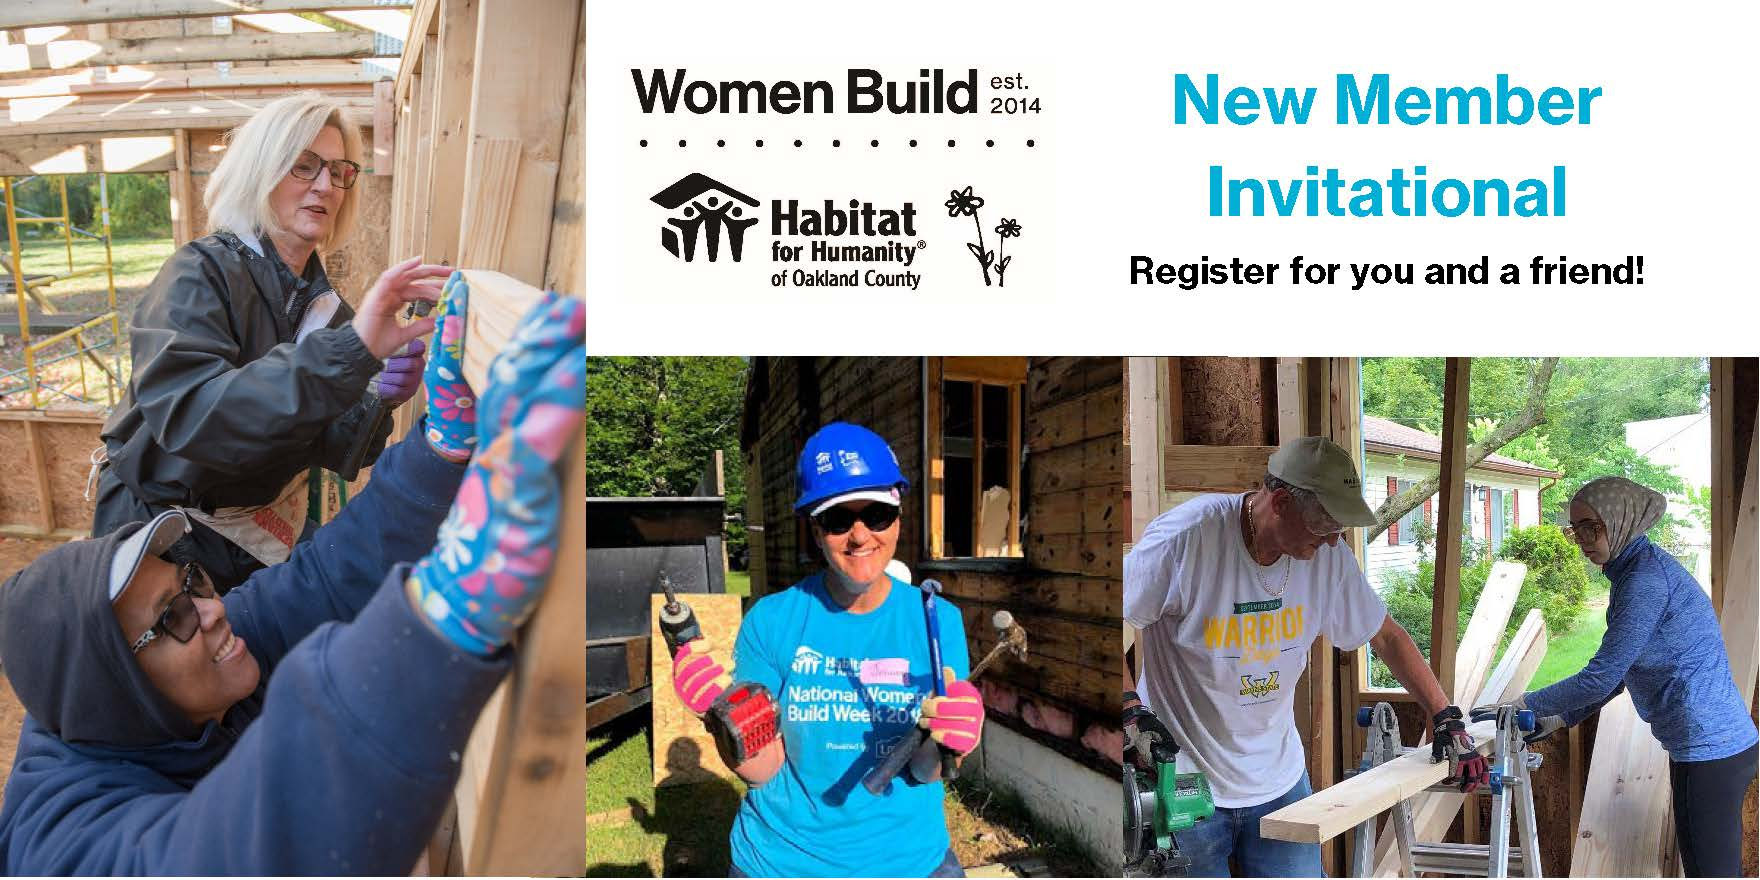 Women Build September Meeting and New Member Invitational